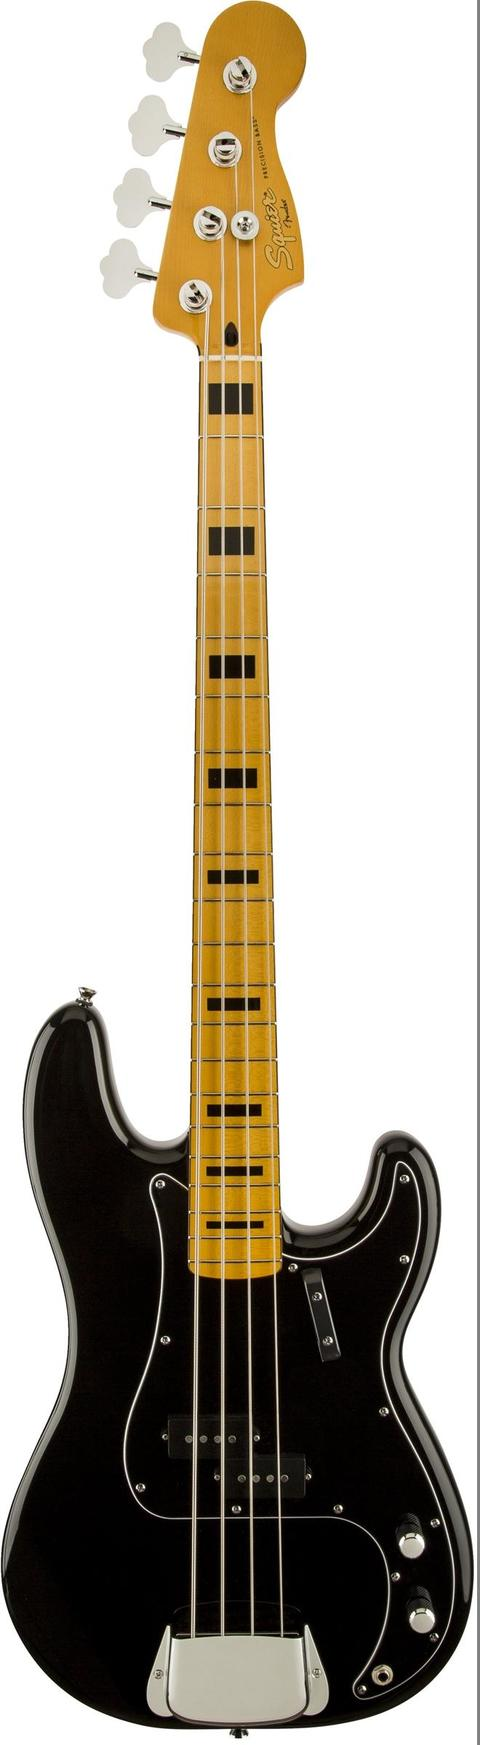 SQUIER CLASSIC VIBE 70'S PRECISION BASS BLACK